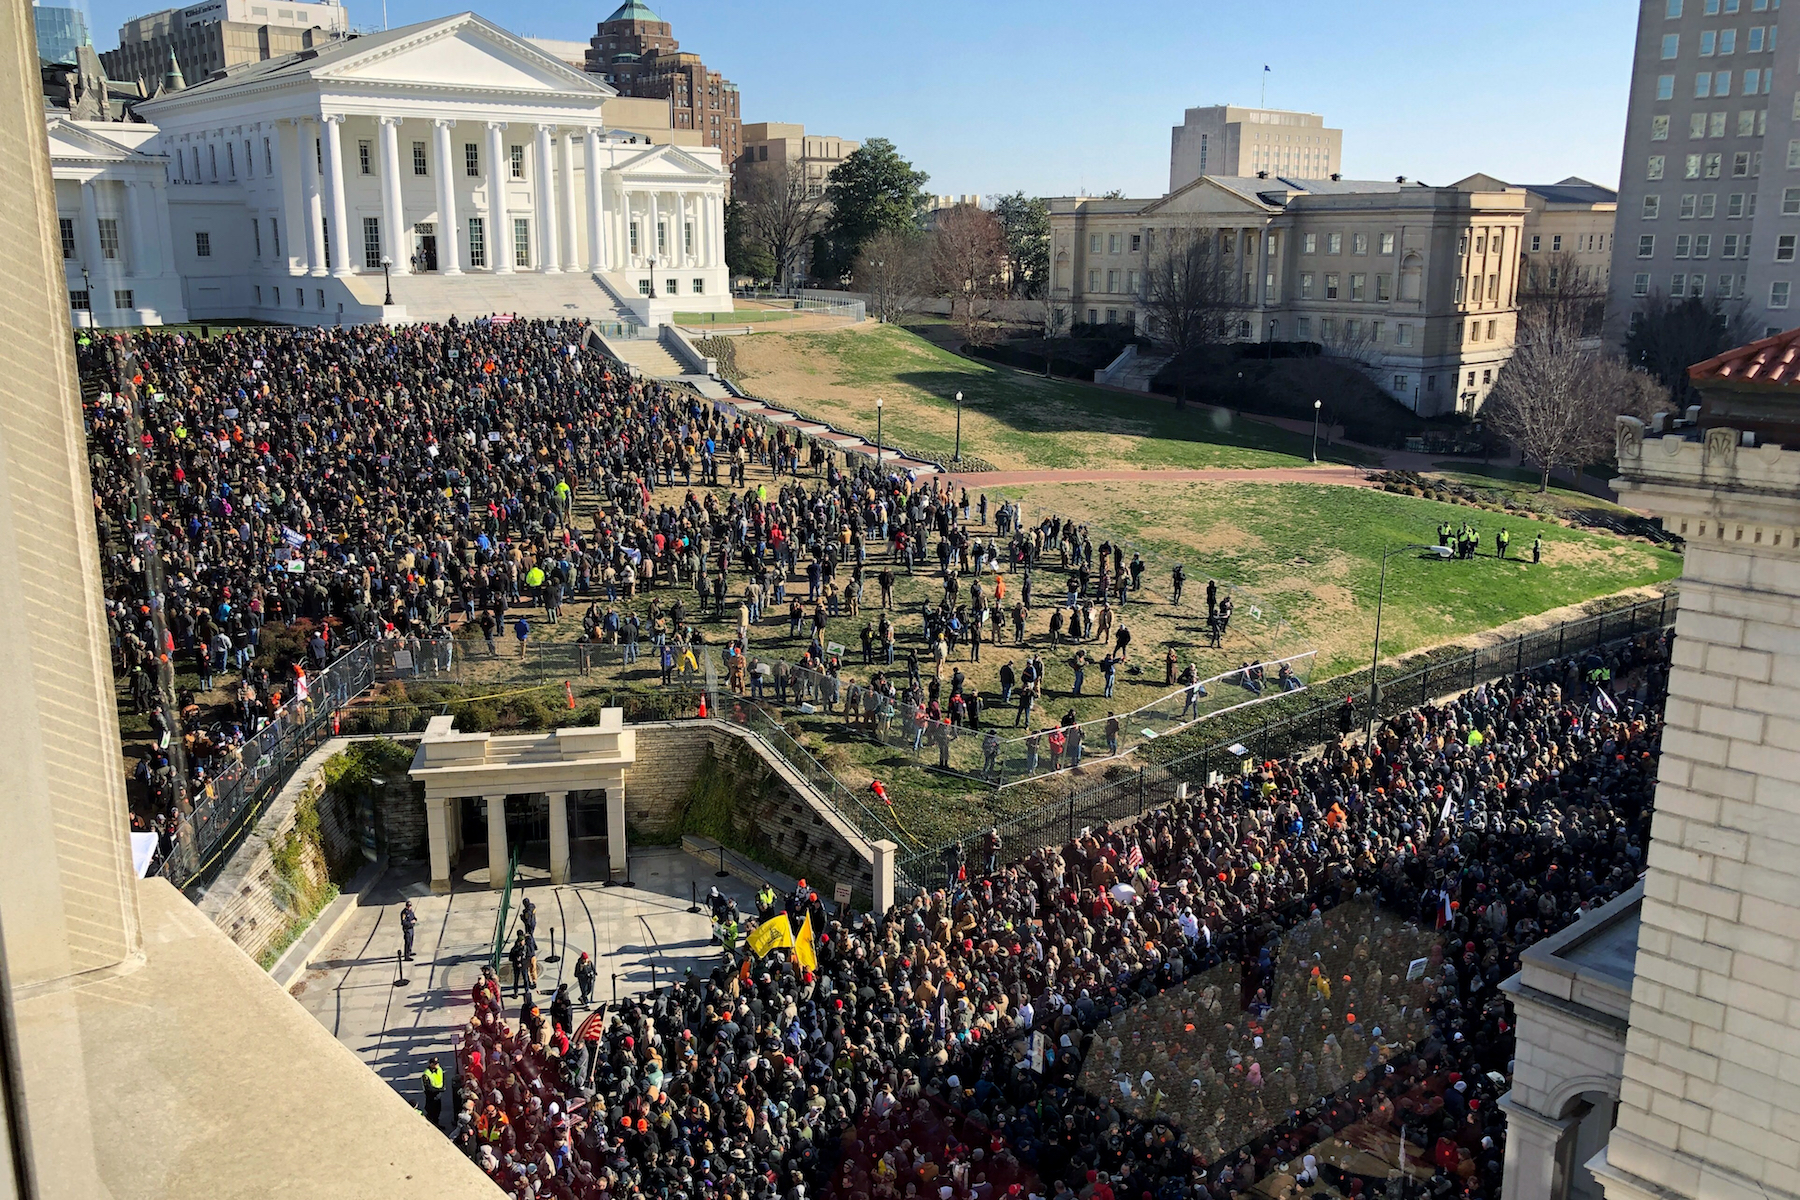 , Thousands of Gun Rights Activists Are Taking a Victory Lap for Peaceful Rally in Virginia, Saubio Making Wealth